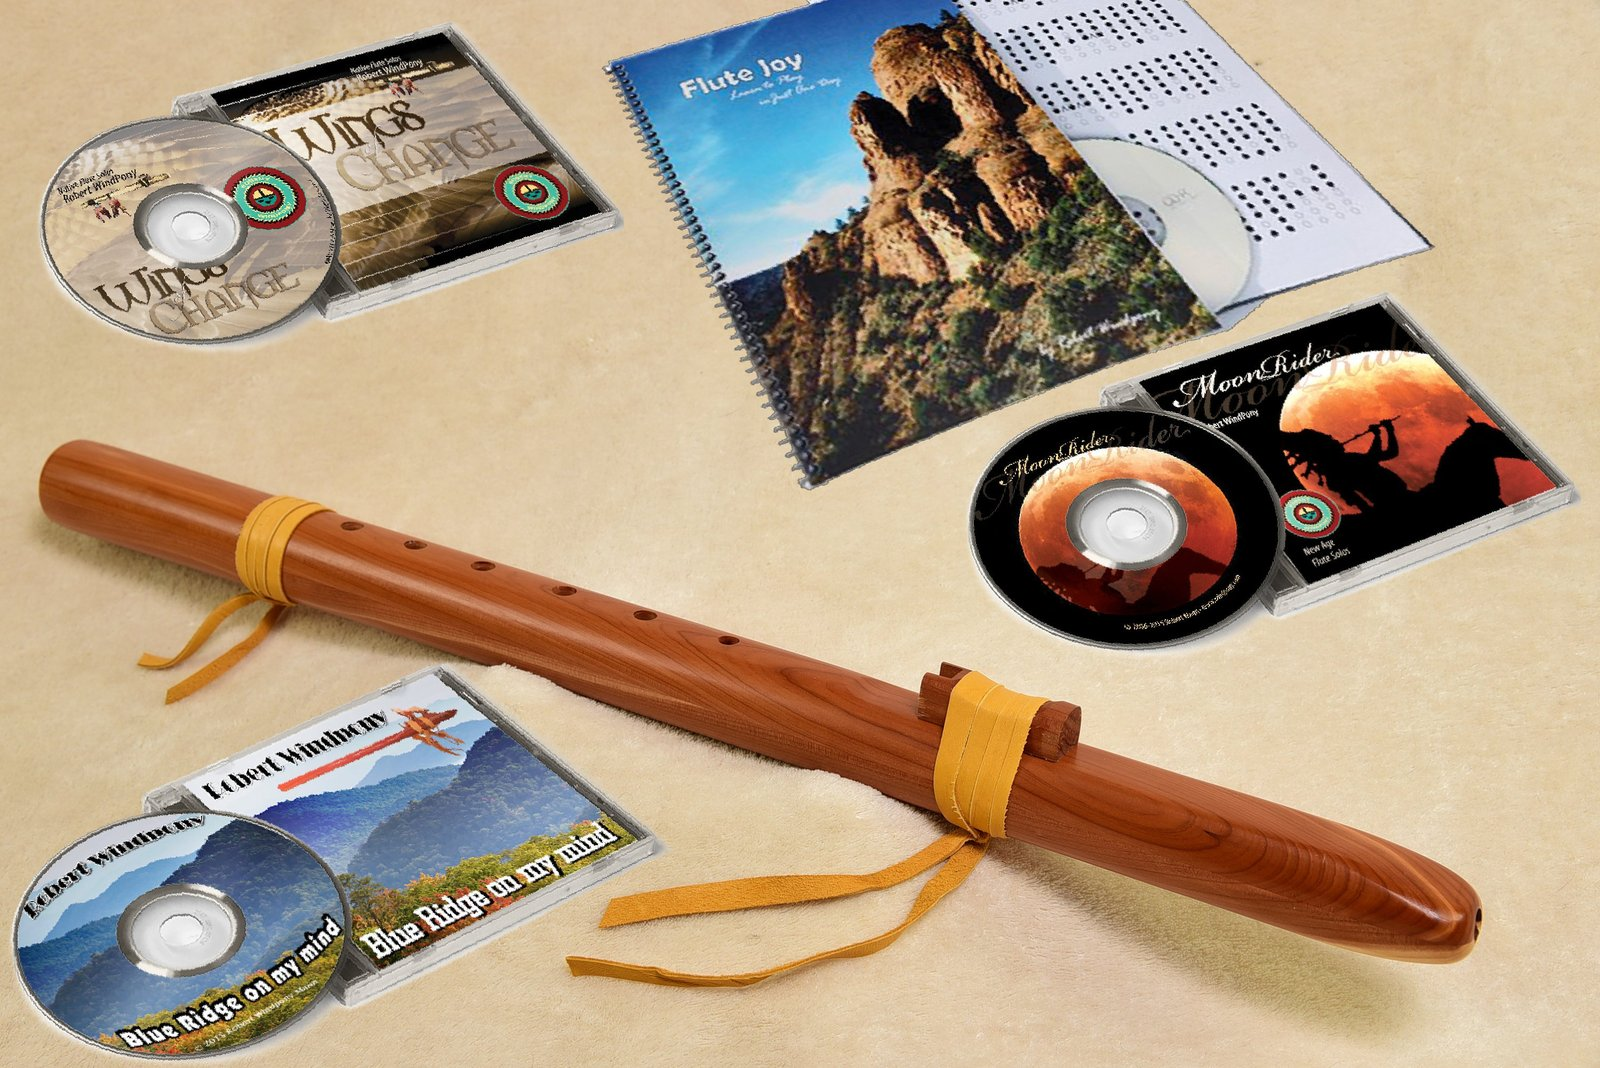 Windpony Cedar Flute in the Key of F# with Instruction Book and 3 Flute CD's